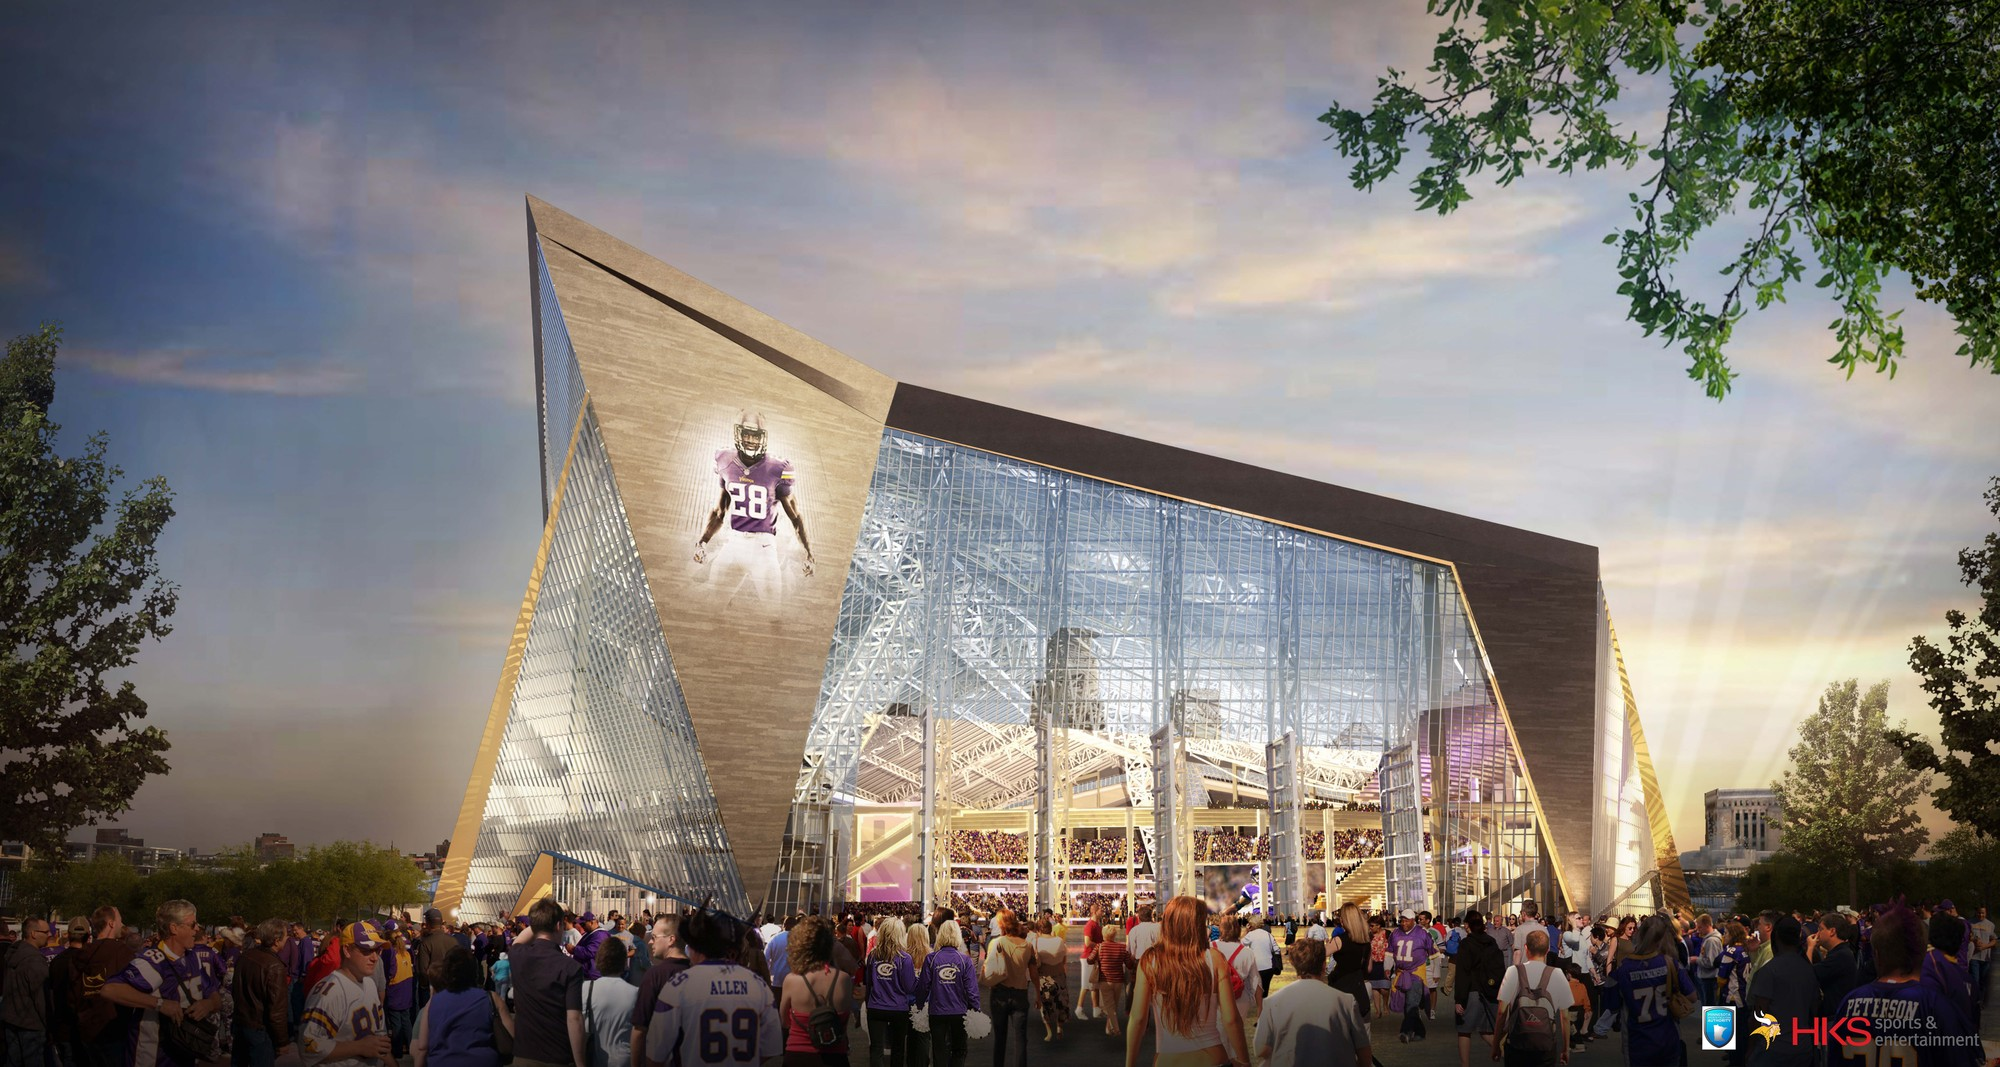 HKS Unveils New $975 Million Minneapolis Stadium / HKS, Courtesy of HKS